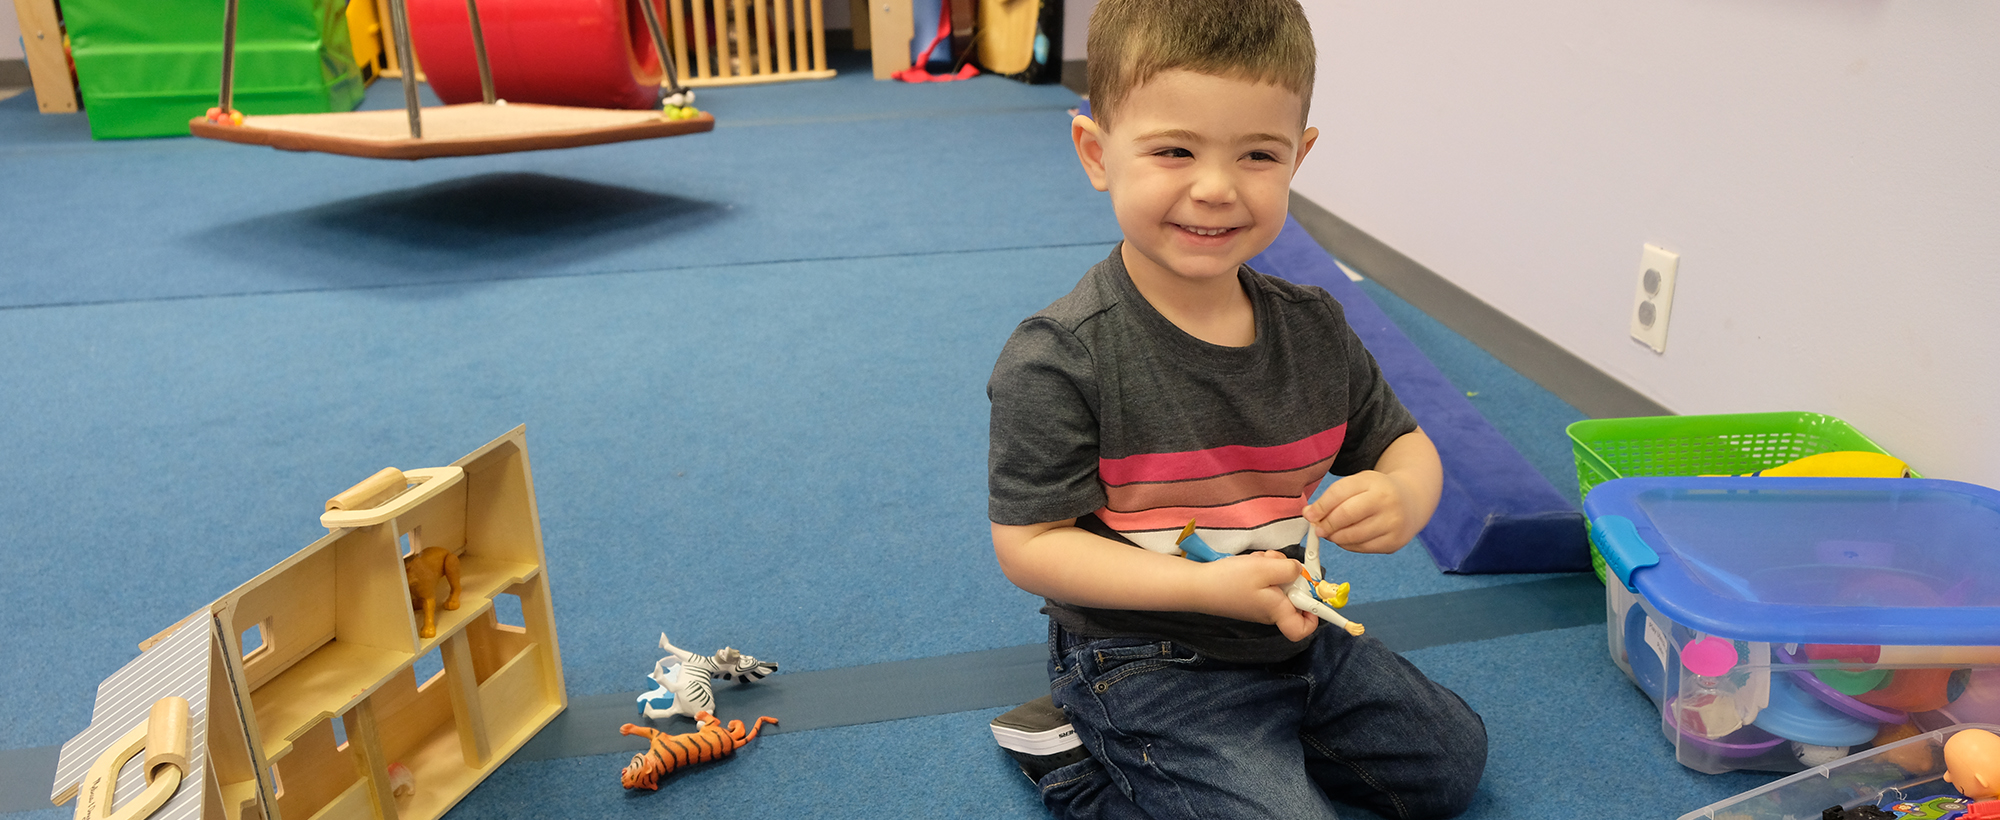 Student playing with toys and smiling